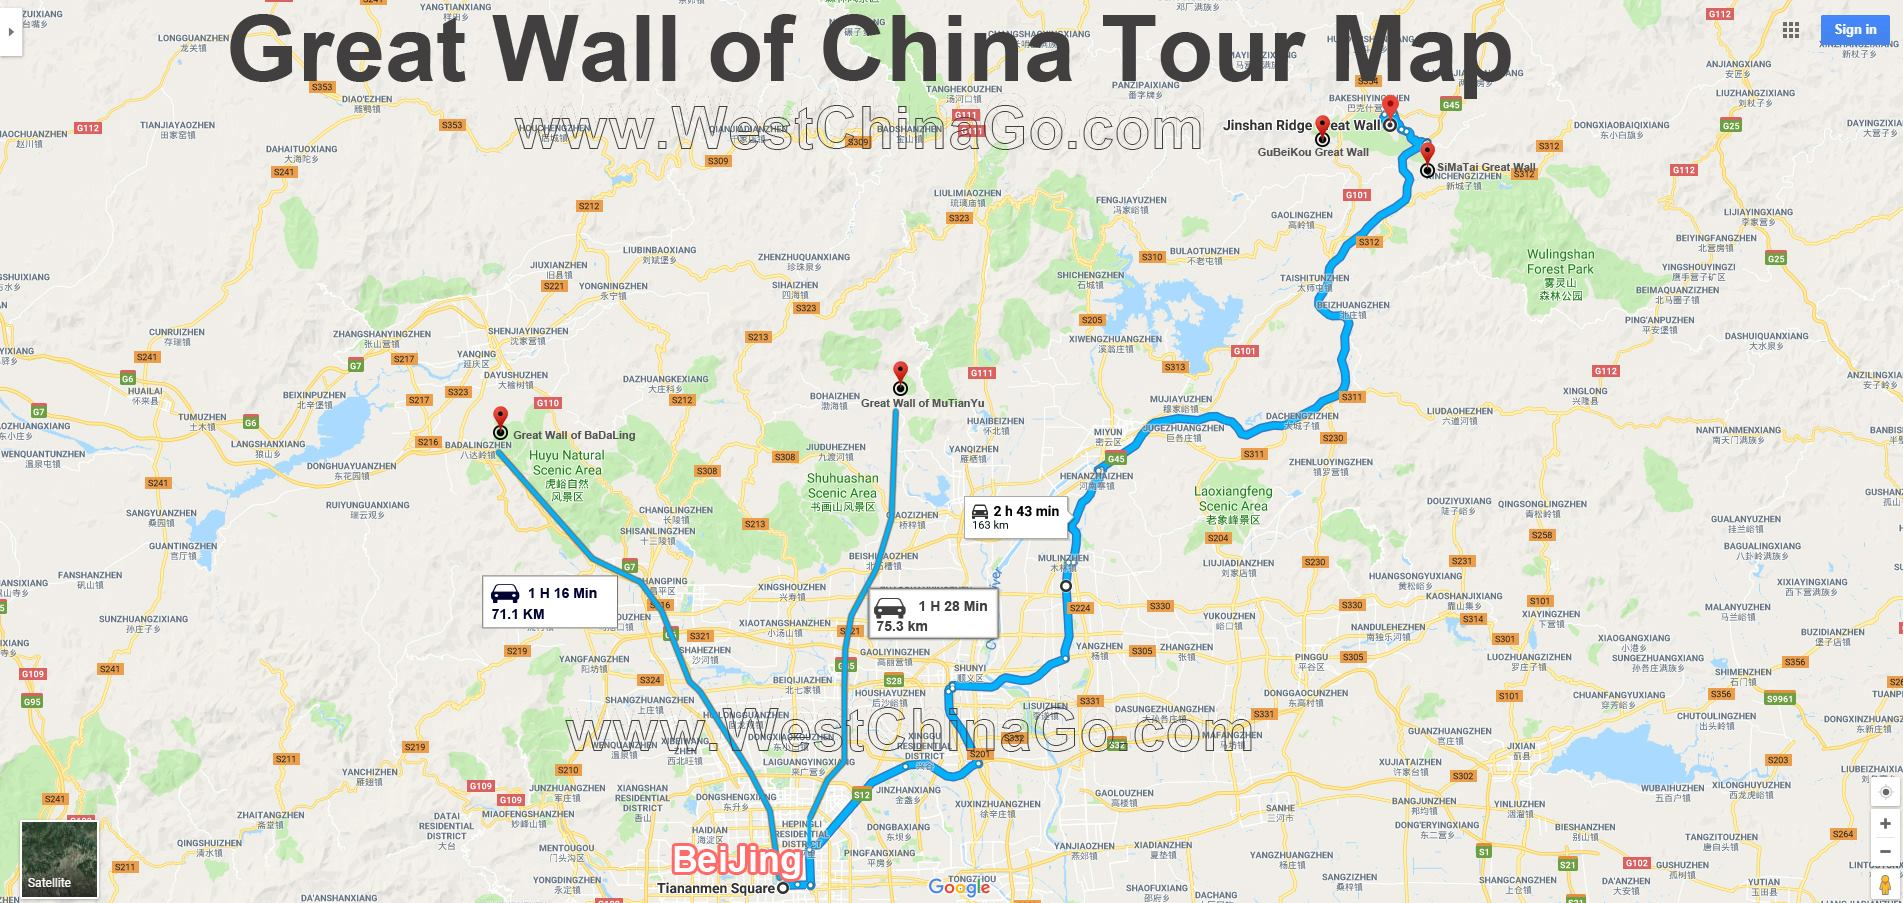 great wall of china toruist map